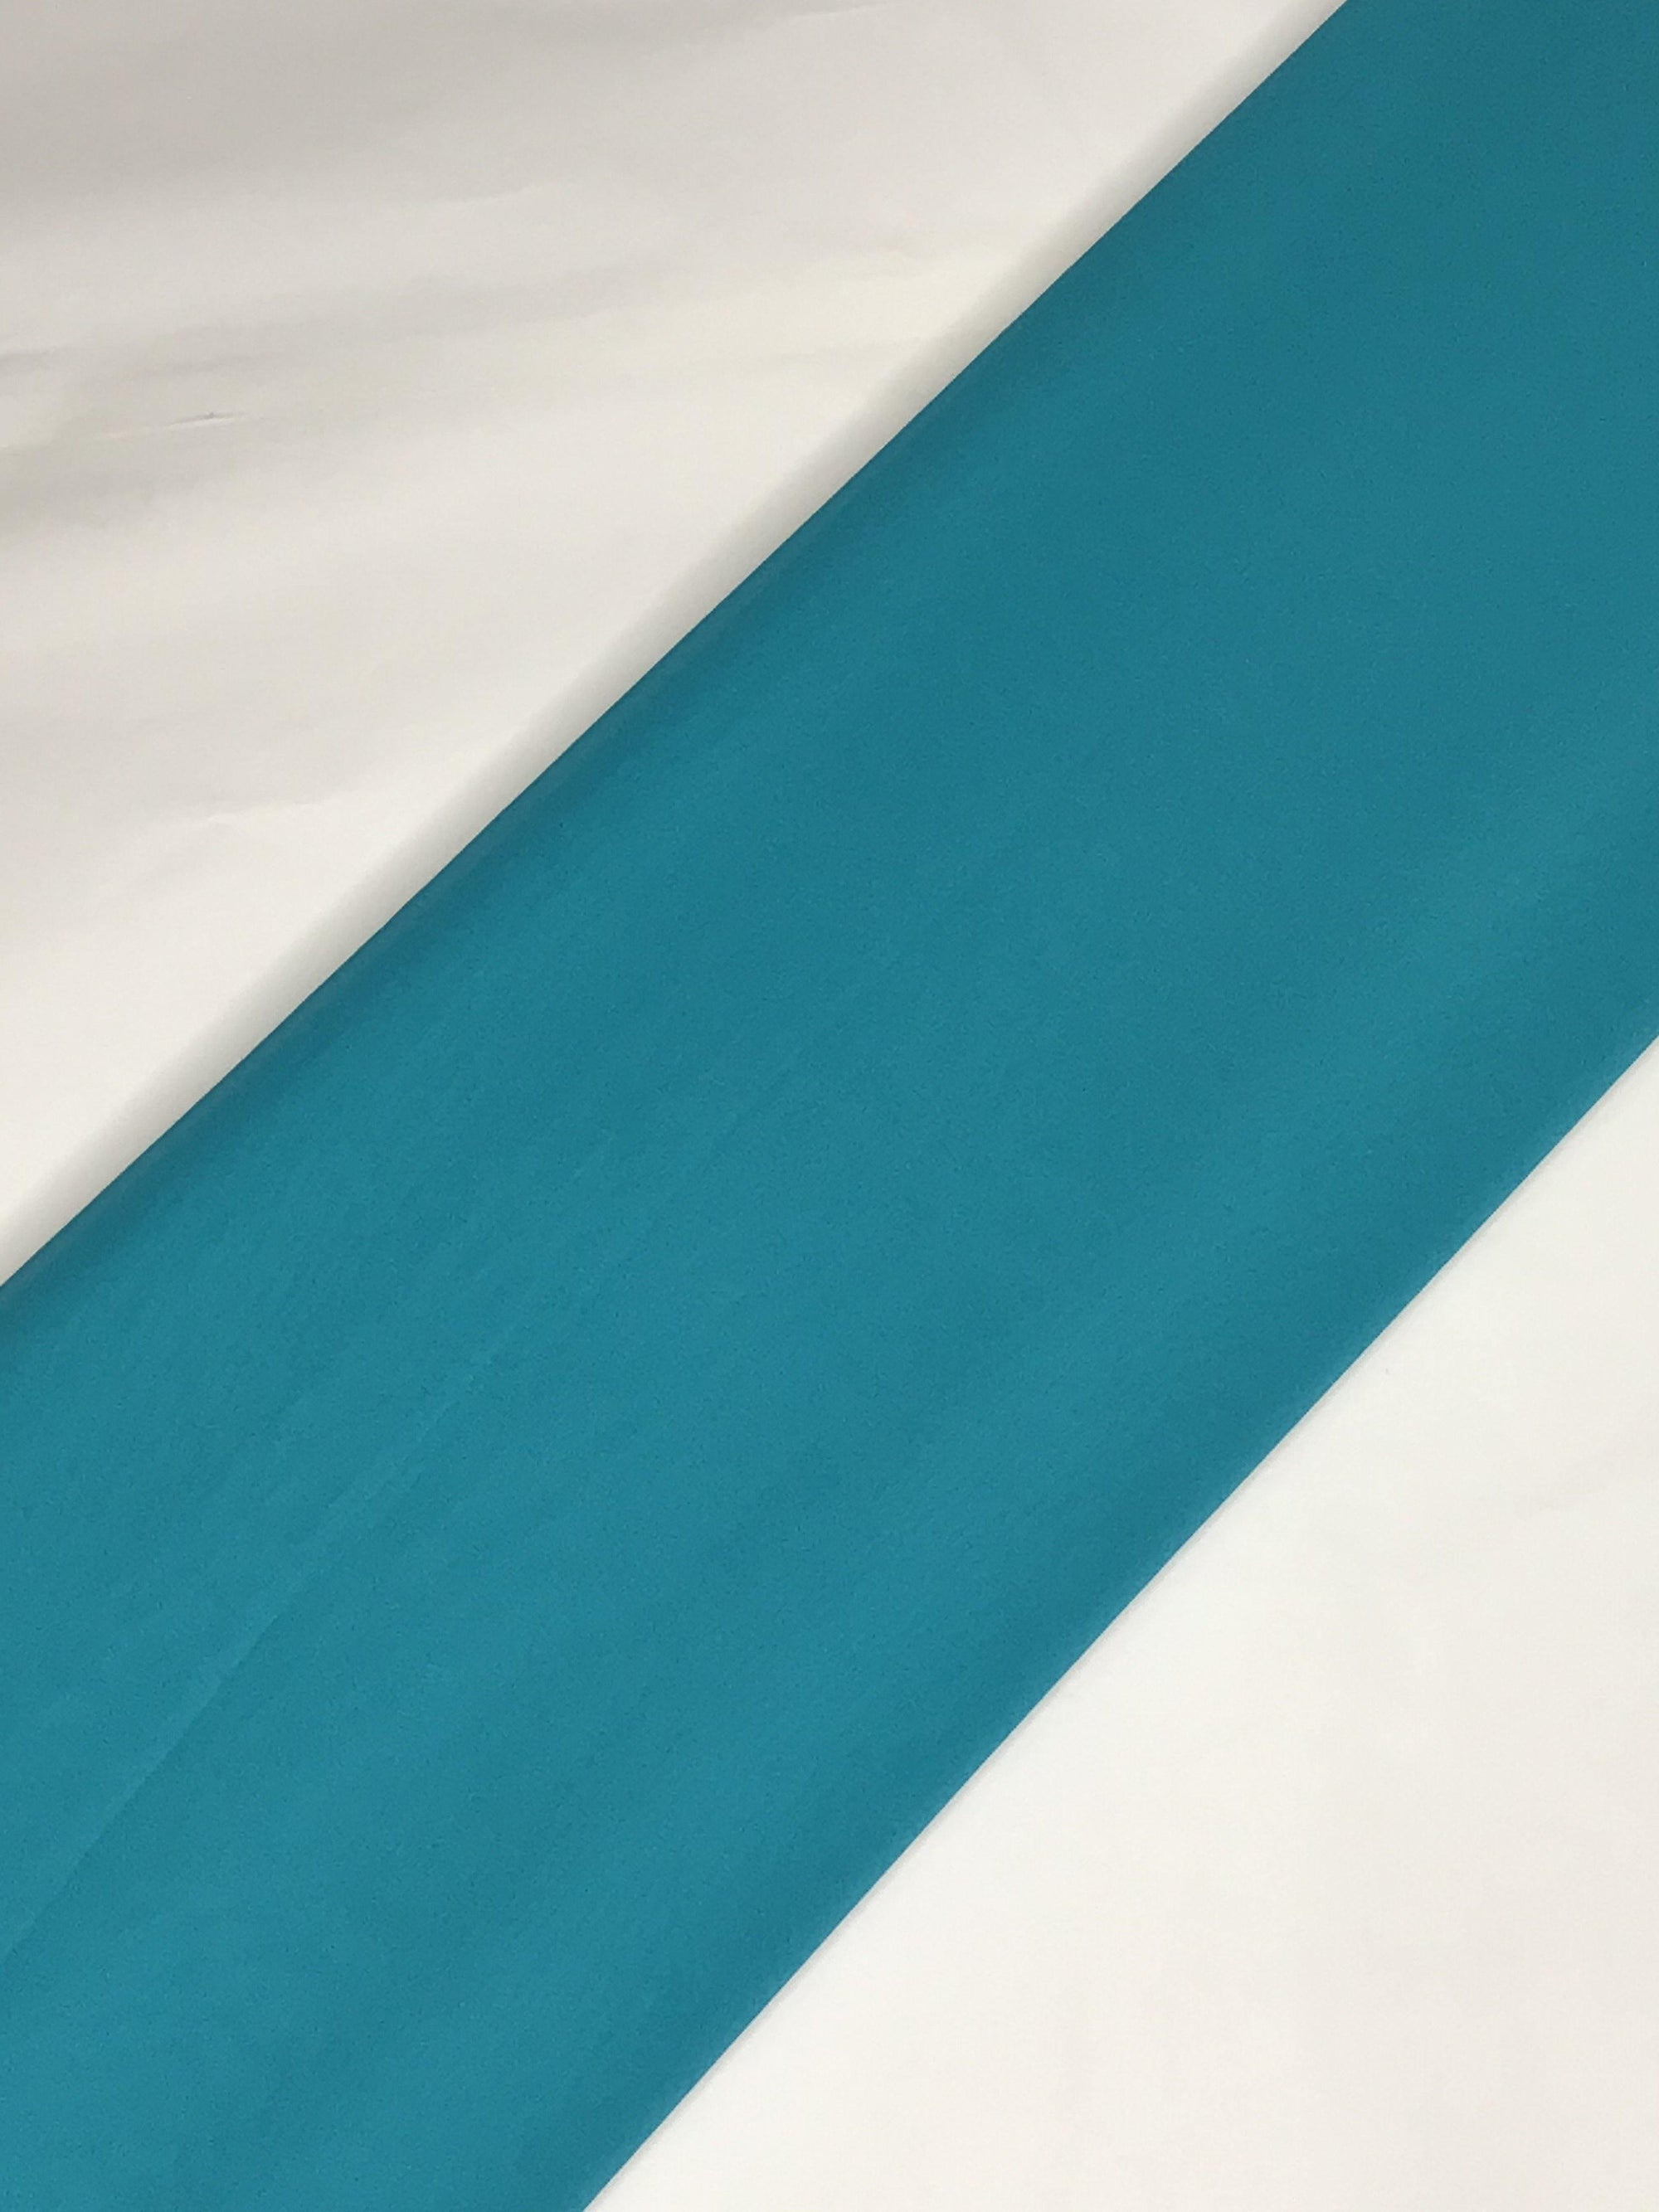 Blue Georgette Plain Dyed Fabric (Width - 44 inches)